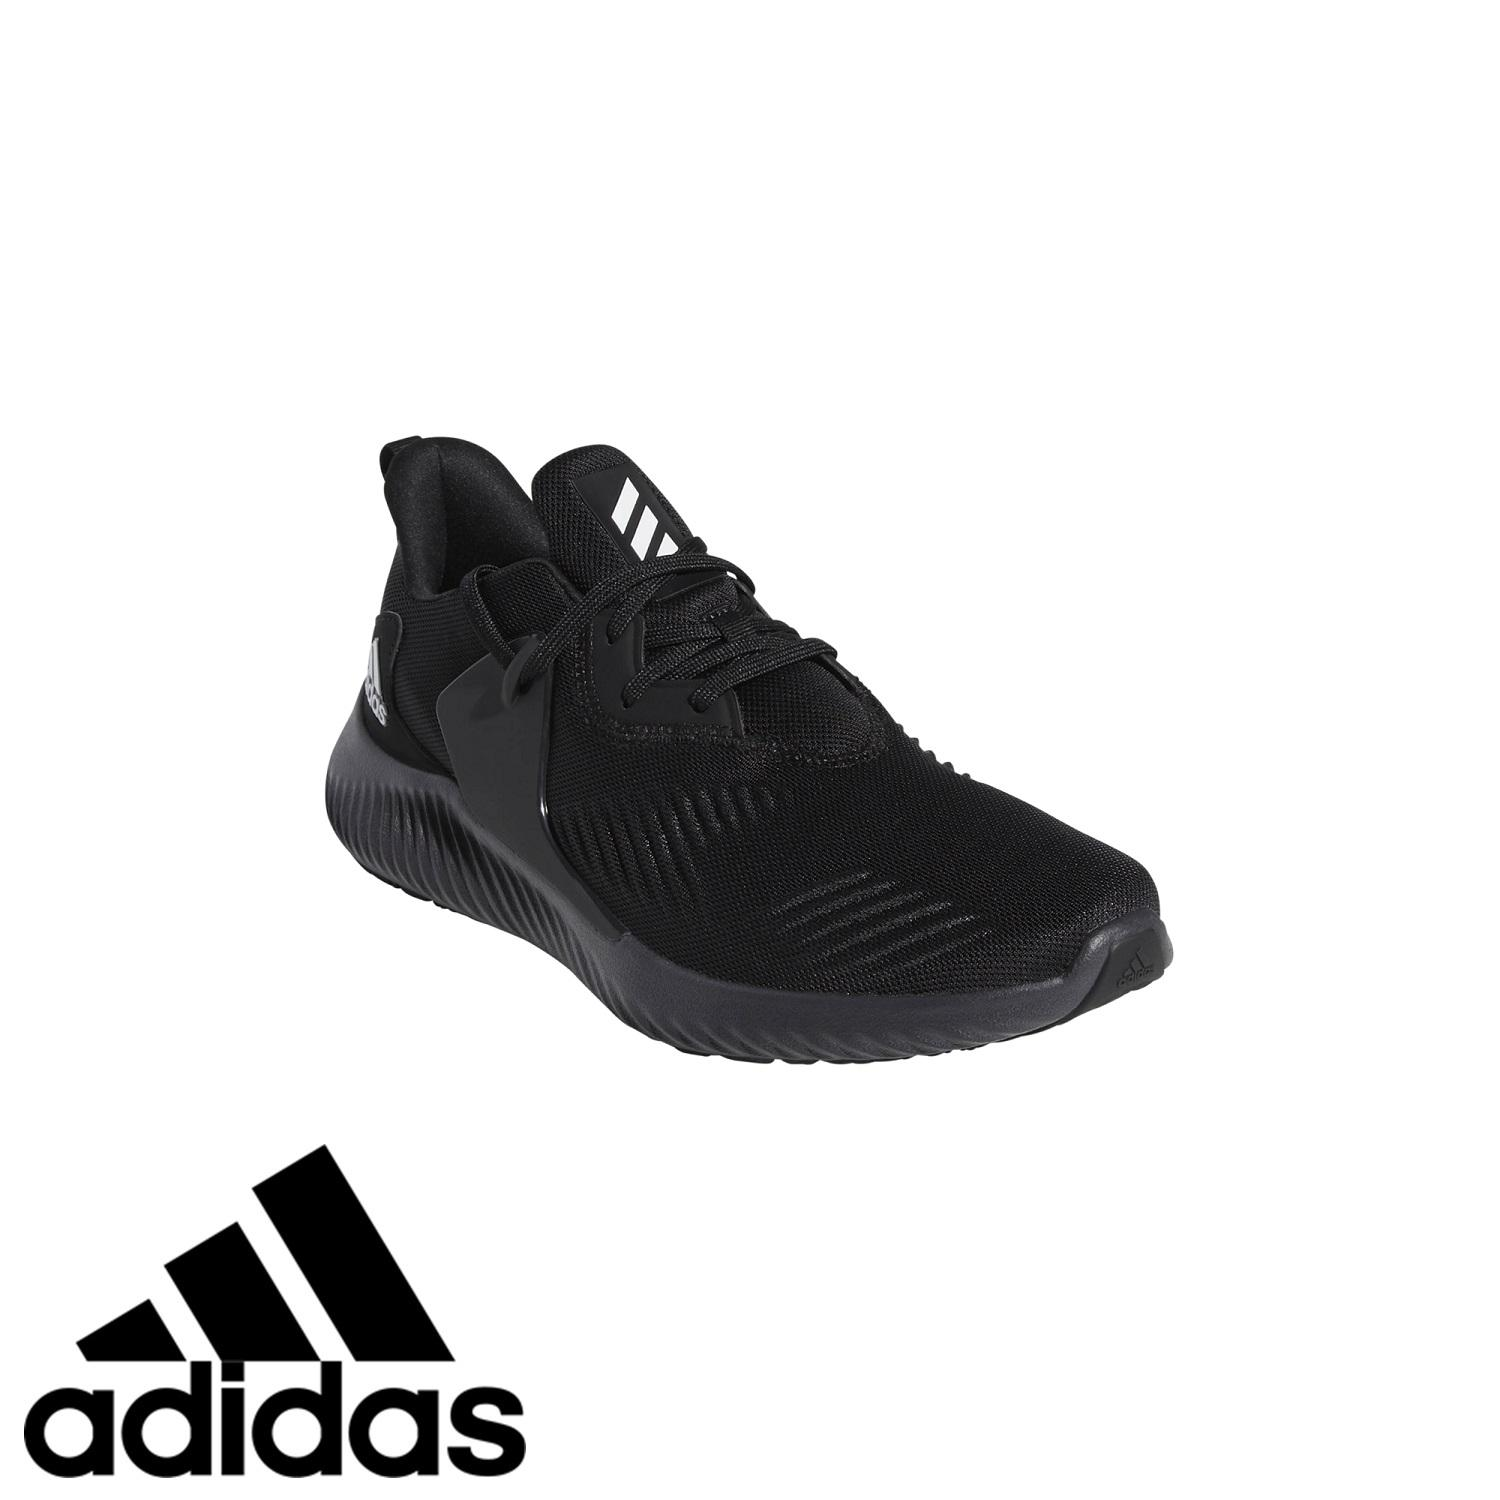 7f1076aa7e5 Adidas Sports Shoes Philippines - Adidas Sports Clothing for sale ...